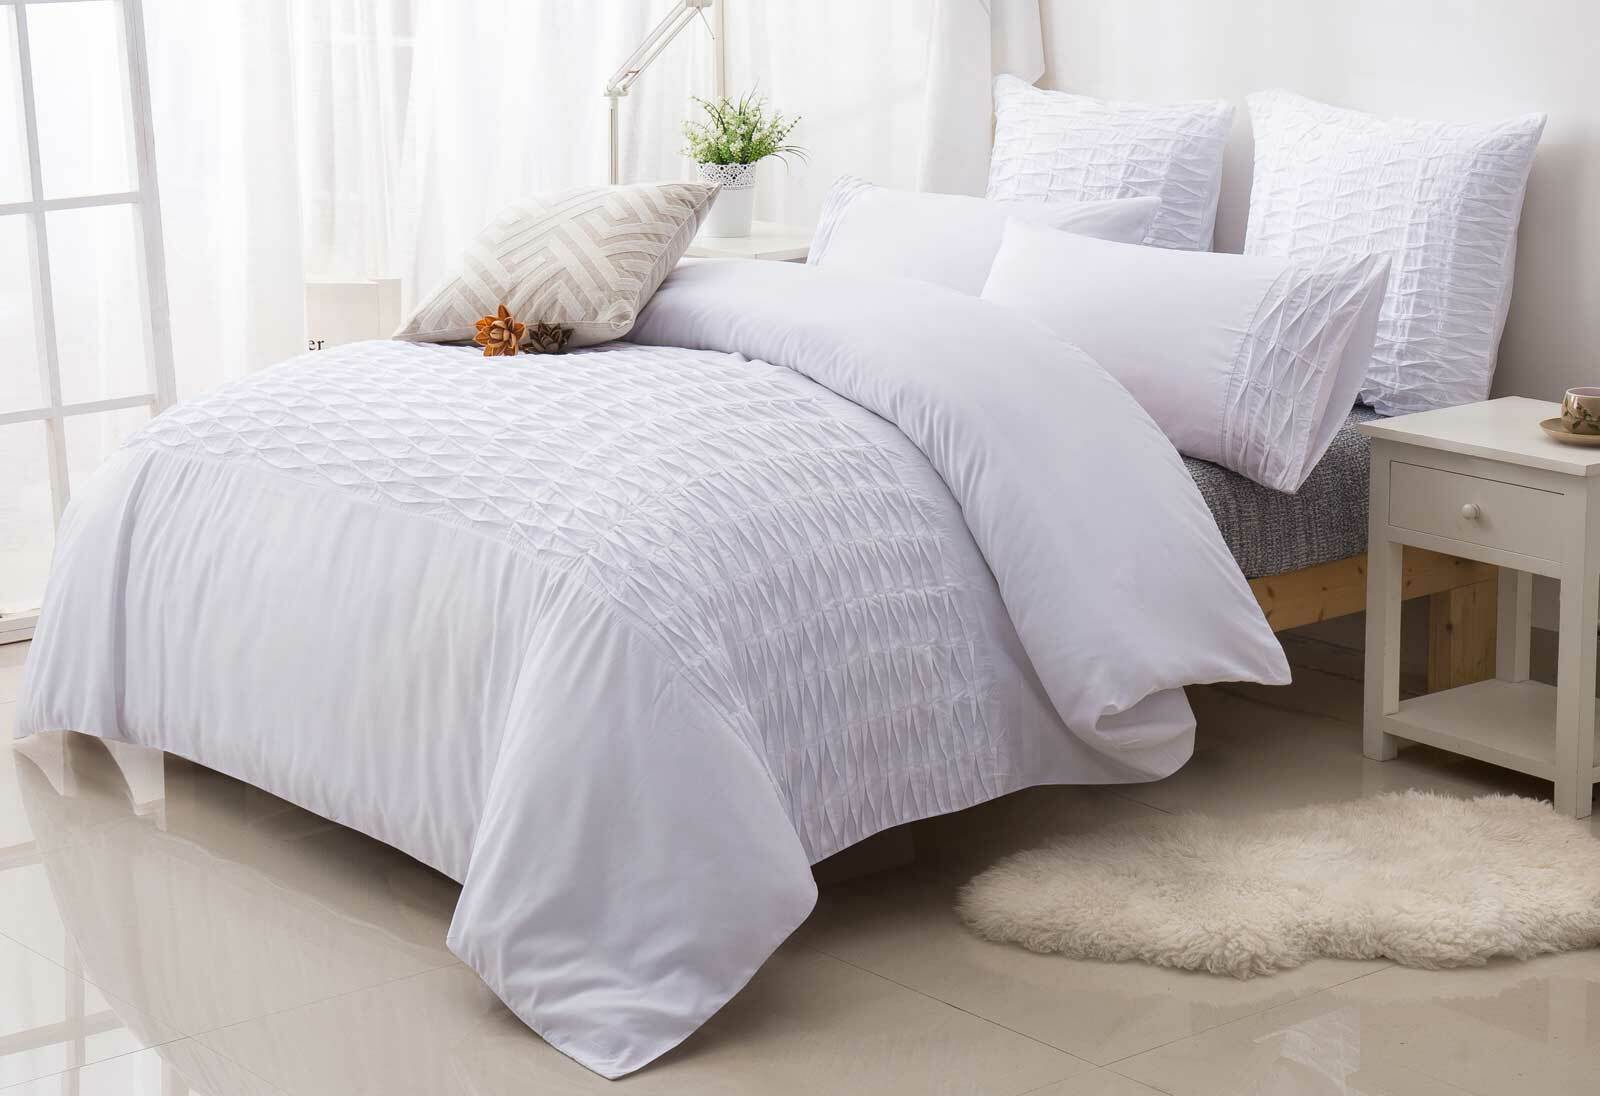 King Single Doona Cover Sally White Pintuck Quilt Doona Cover Set By Luxton